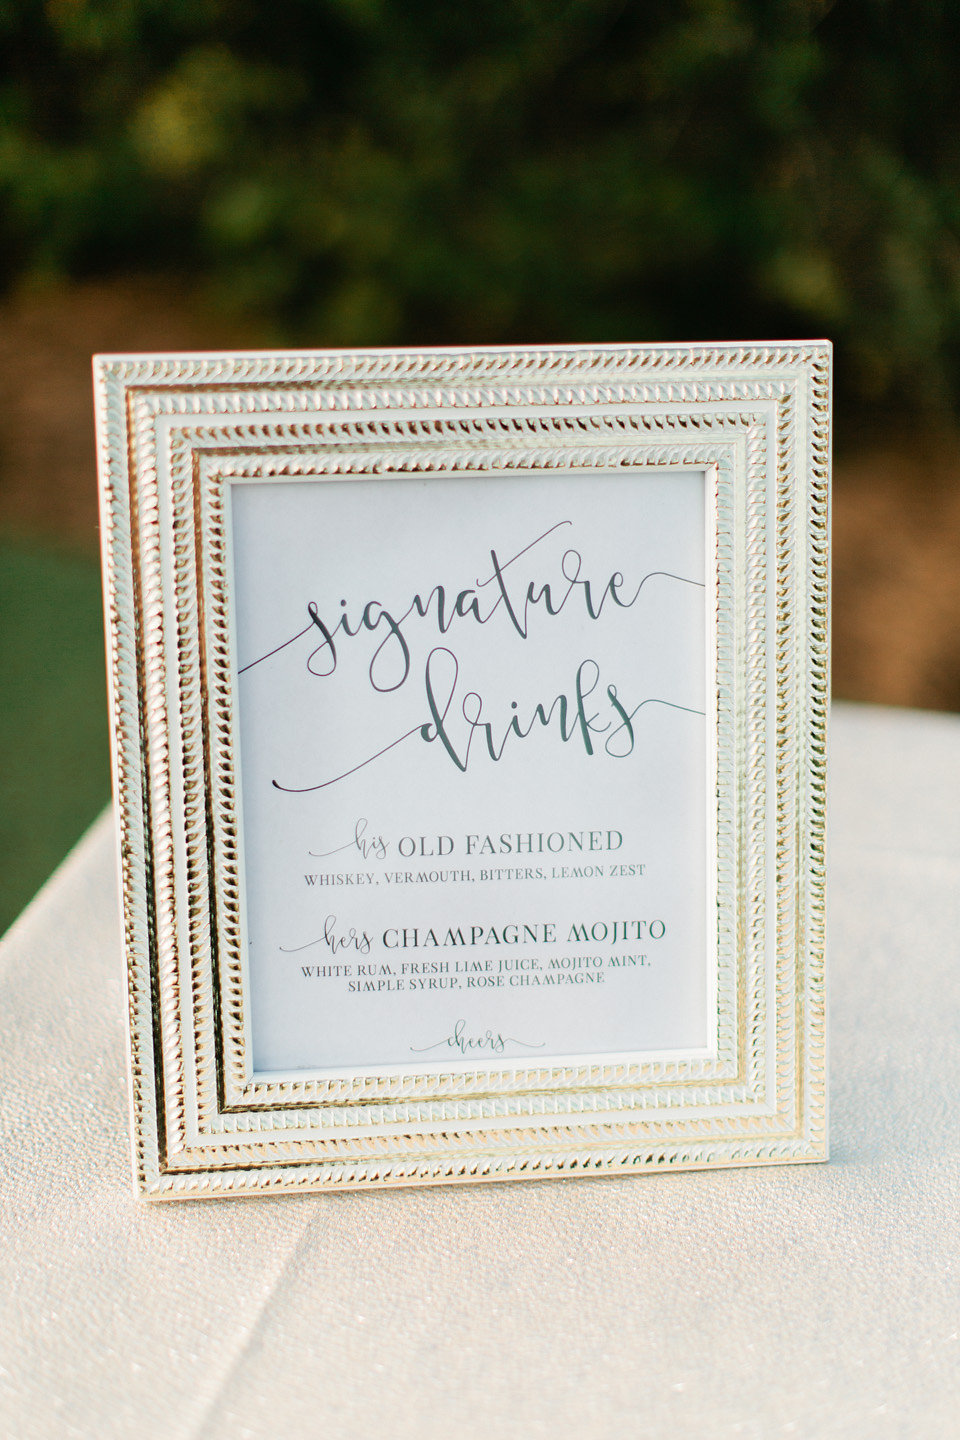 Old Fashioned Signature Drink Sign  Champagne Mojito Signature Drink Sign  Blush Wedding at TPC Sawgrass Wedding Ponte Vedra Beach  Jacksonville Wedding Planner Blue Ribbon Weddings  Jacksonville Wedding Photographer Debra Eby Photography  Wedding Ceremony & Reception at TPC Sawgrass Jacksonville